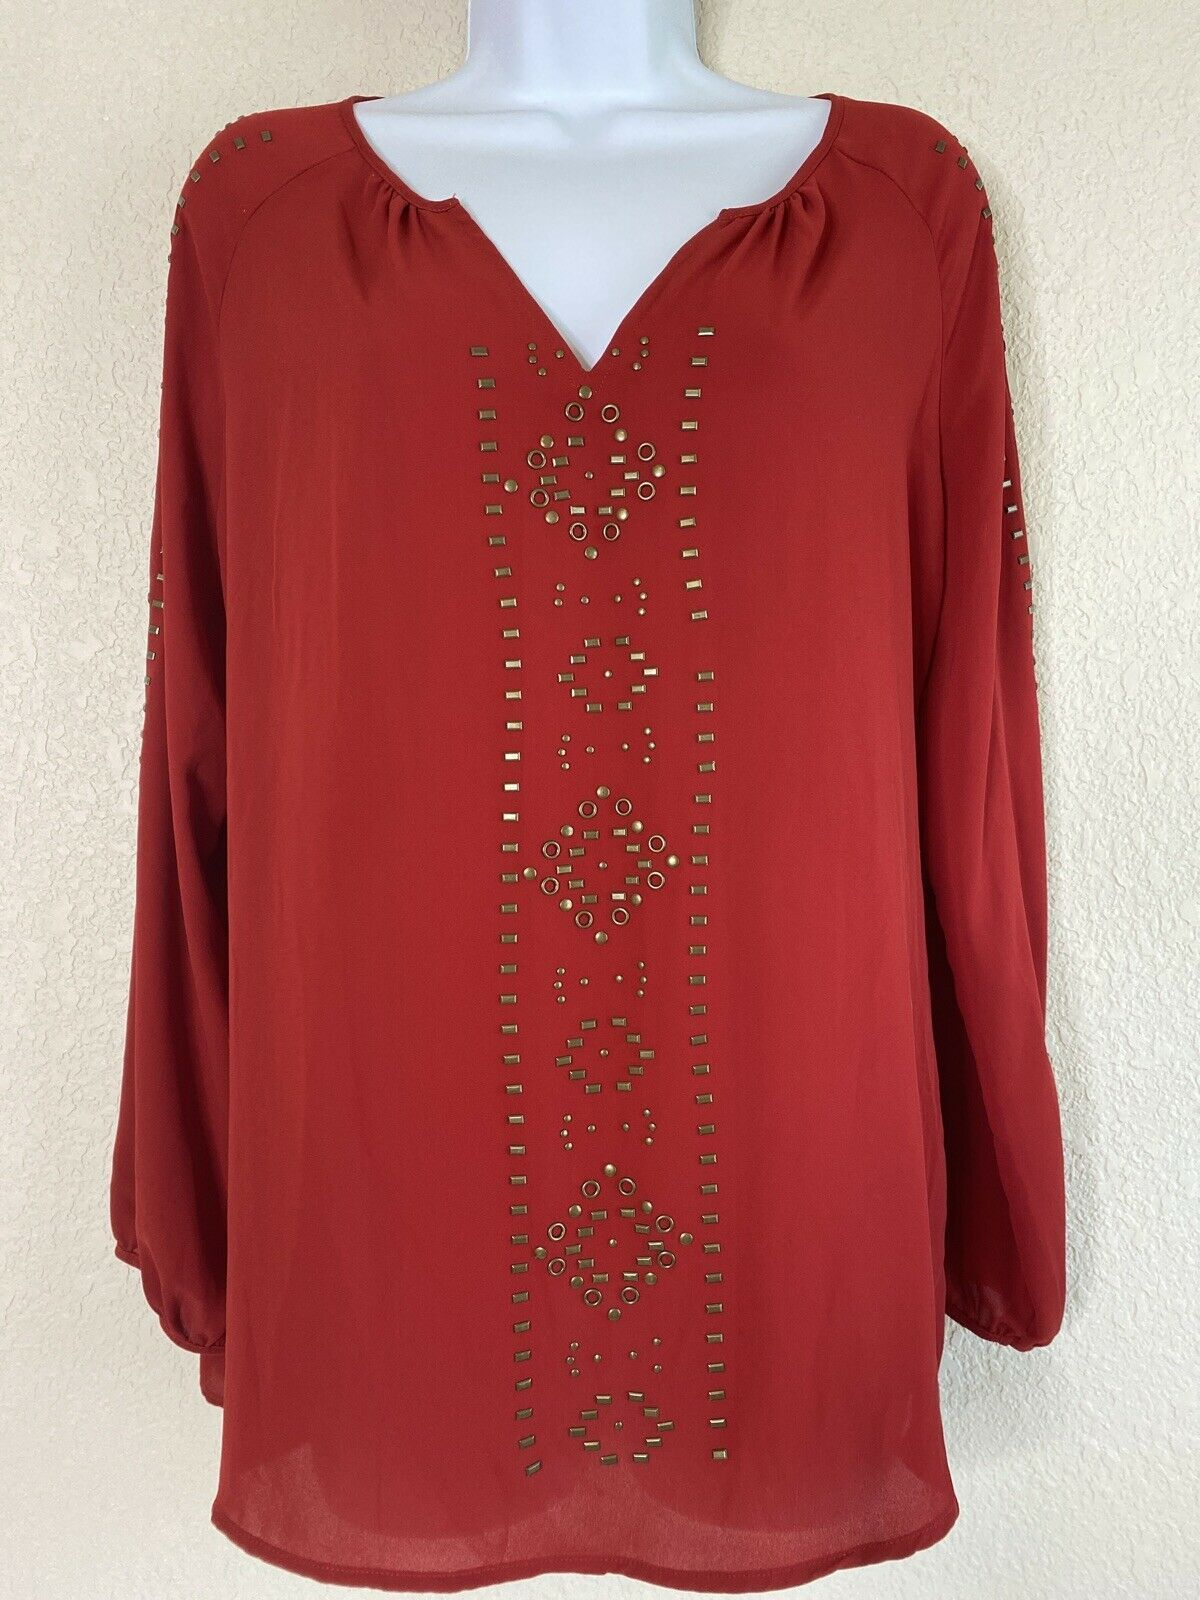 Primary image for Roz & Ali Womens Size M Red Gromet Embellished Blouse 3/4 Sleeve